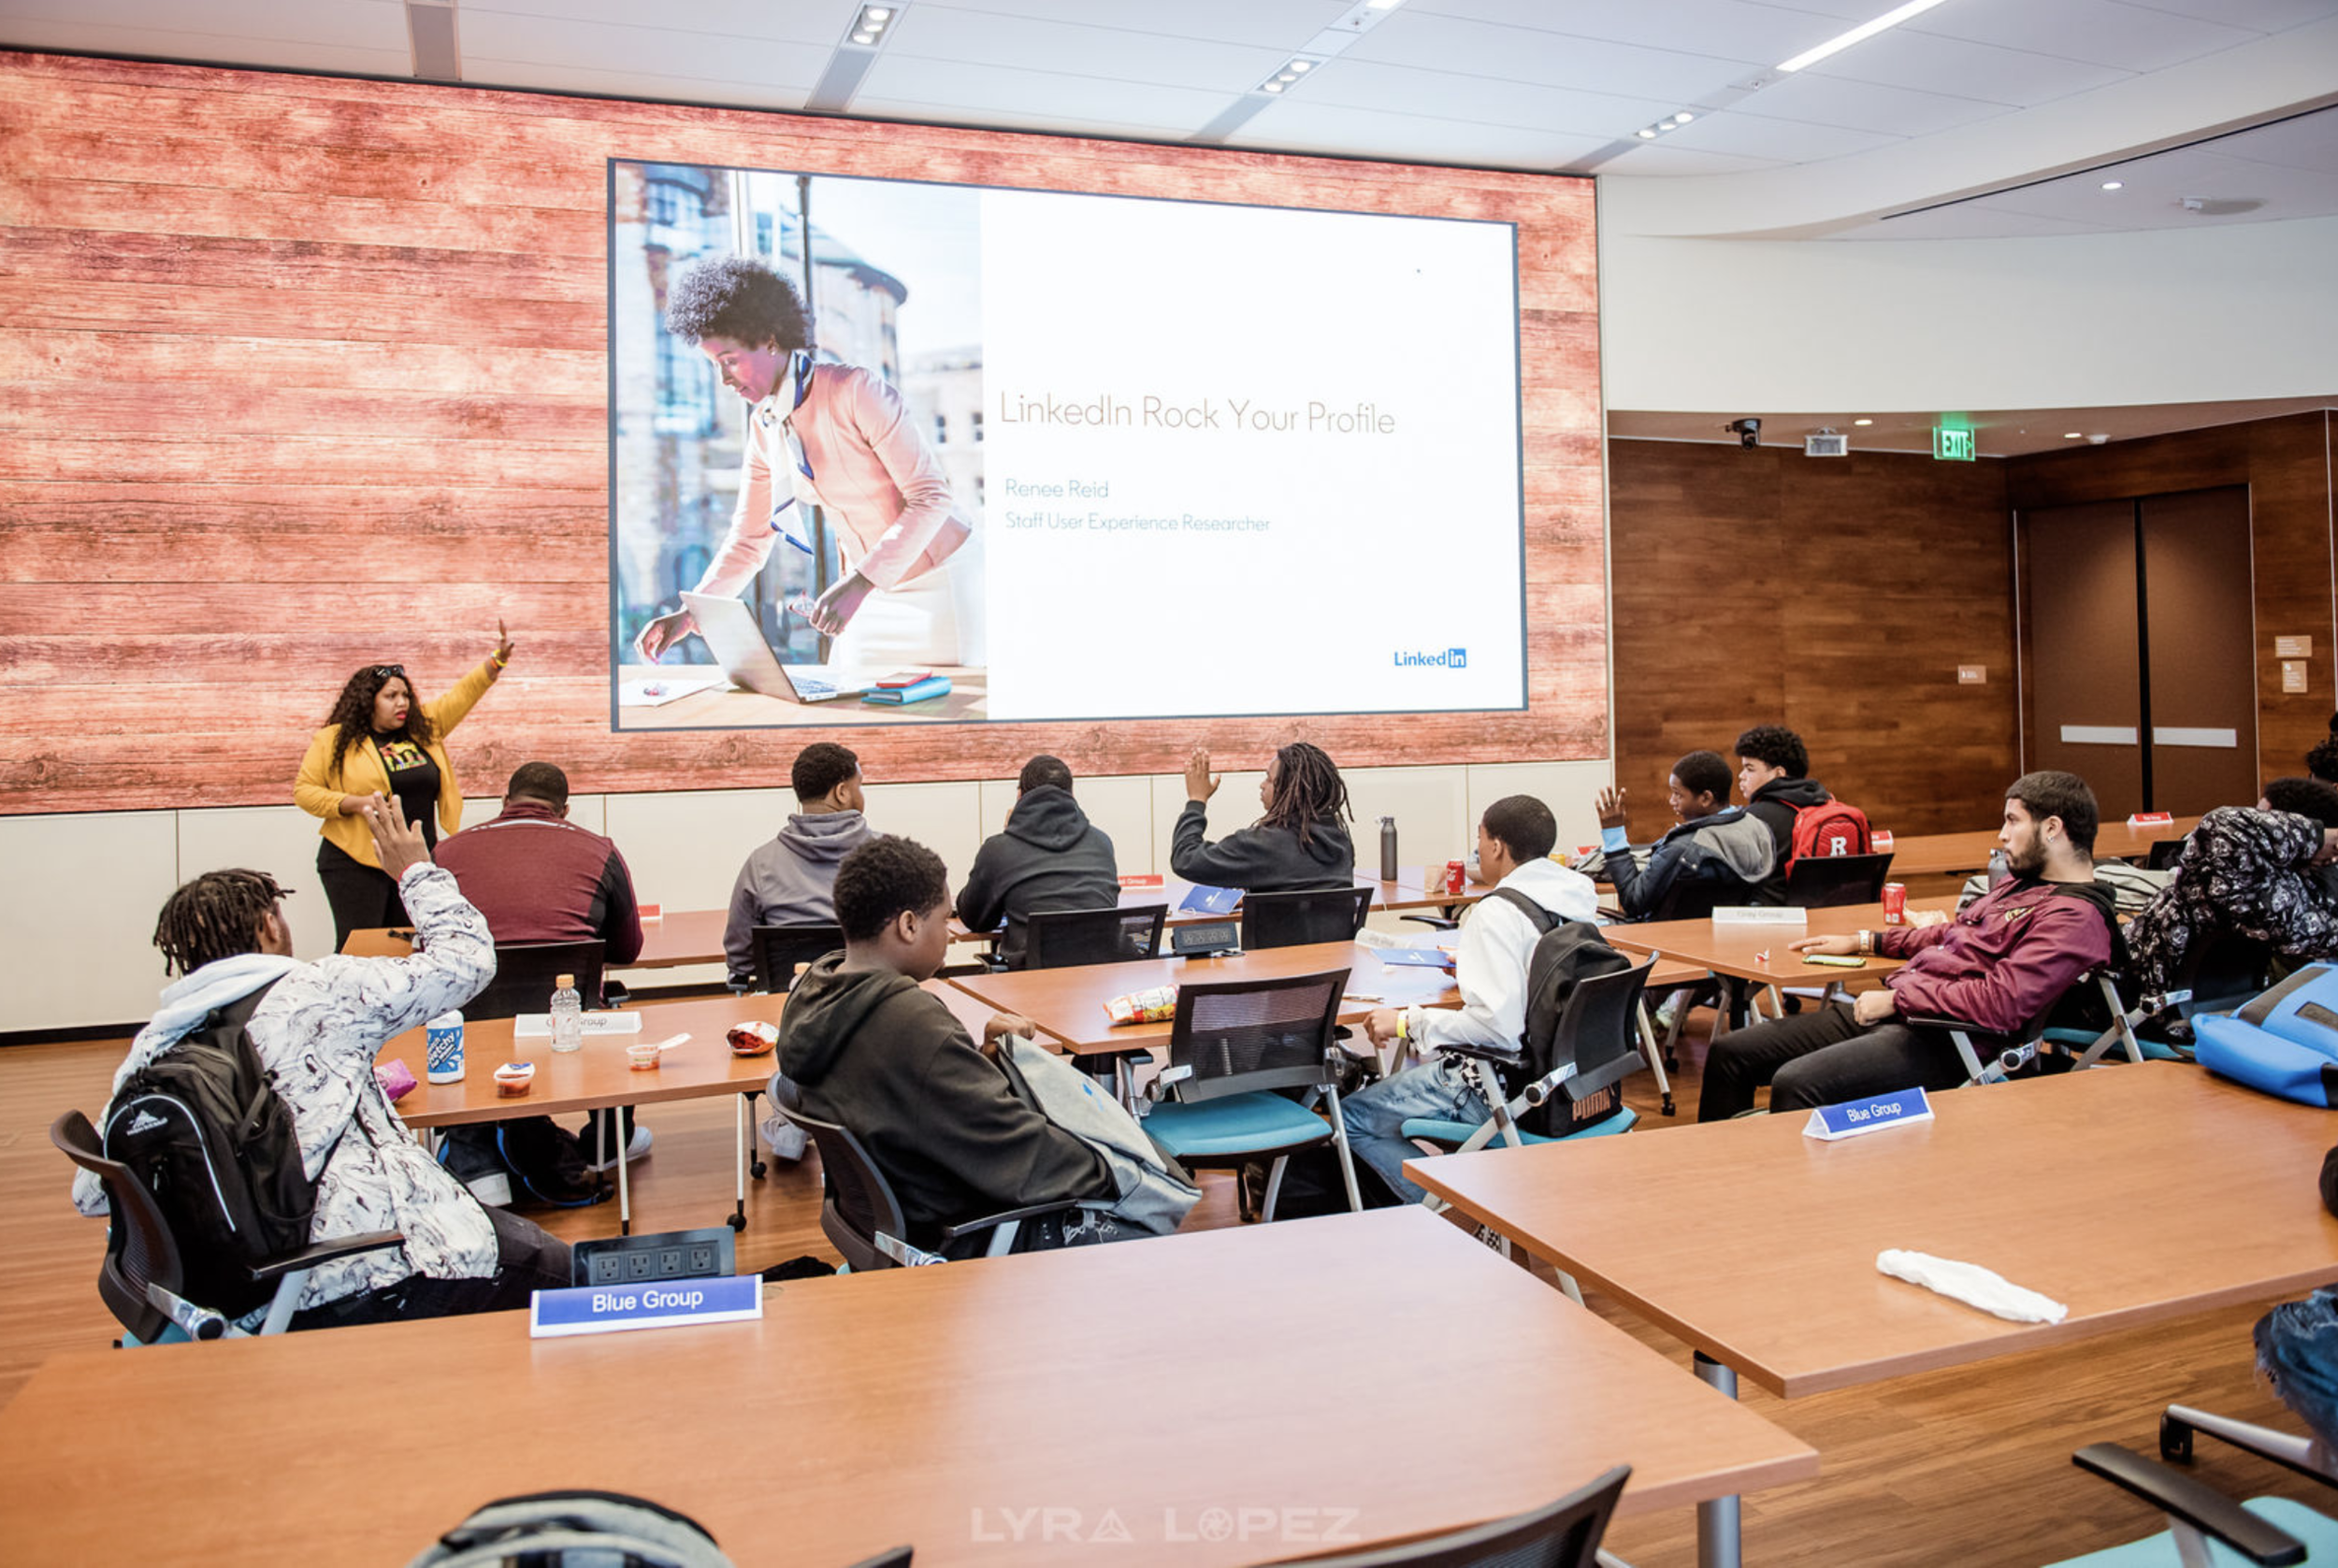 Rock Your Profile: Presenting as SalesForce and LinkedIn Black ERG's join forces to Empower Young Black Men